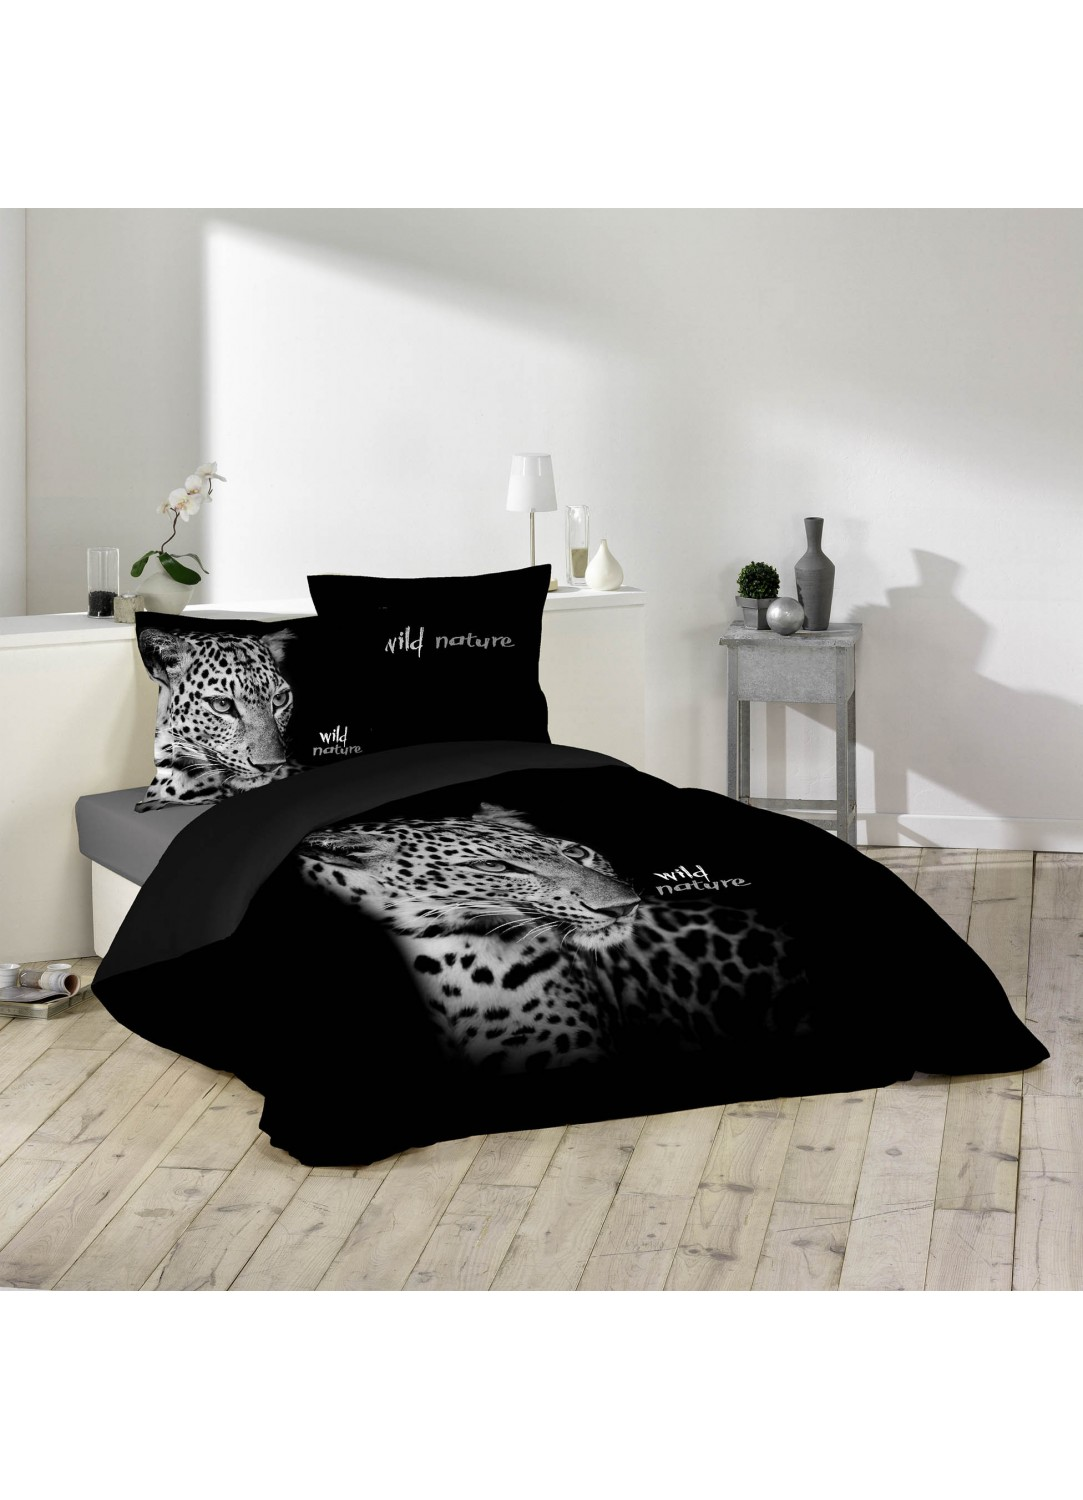 parure de lit imprim e place wild nature noir. Black Bedroom Furniture Sets. Home Design Ideas